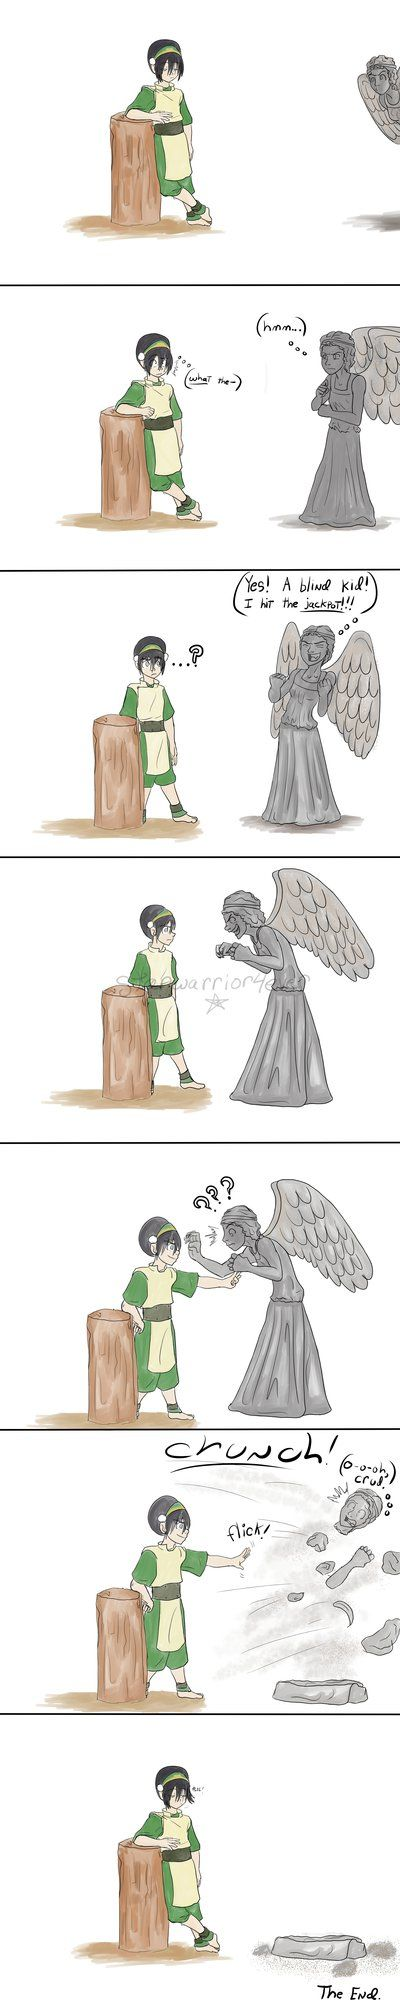 Yeah, I should have thought of a better title, but eh it works. I thought of this idea during greek class (Yeah, I'm learning how to speak/write ancient greek XD) and I just looked up Toph and Weep...